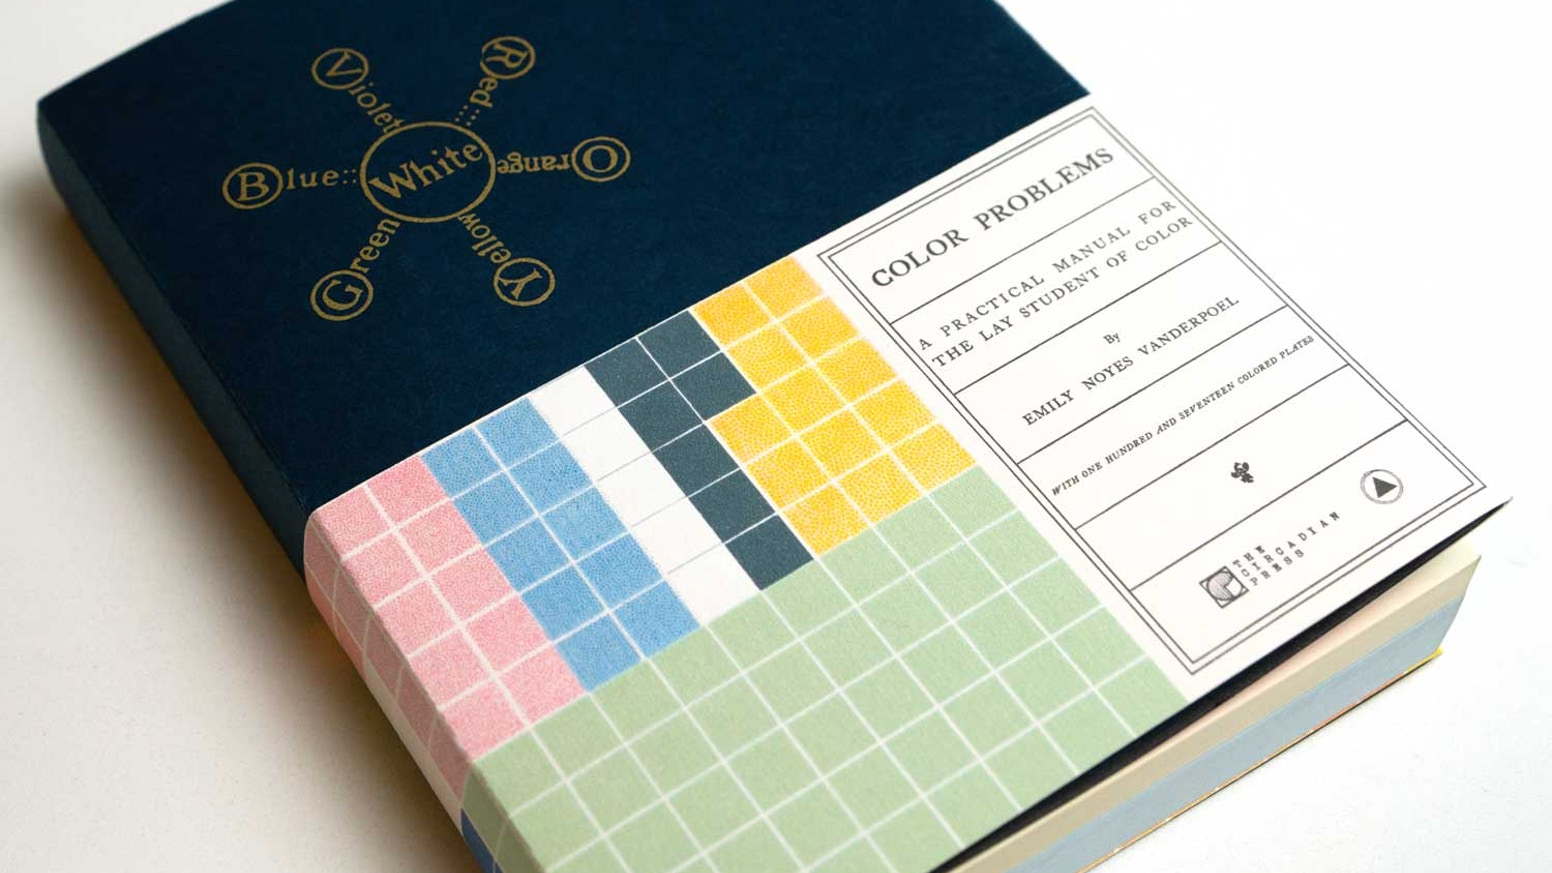 Republishing a visionary 115-year-old color manual. This book is now widely available.